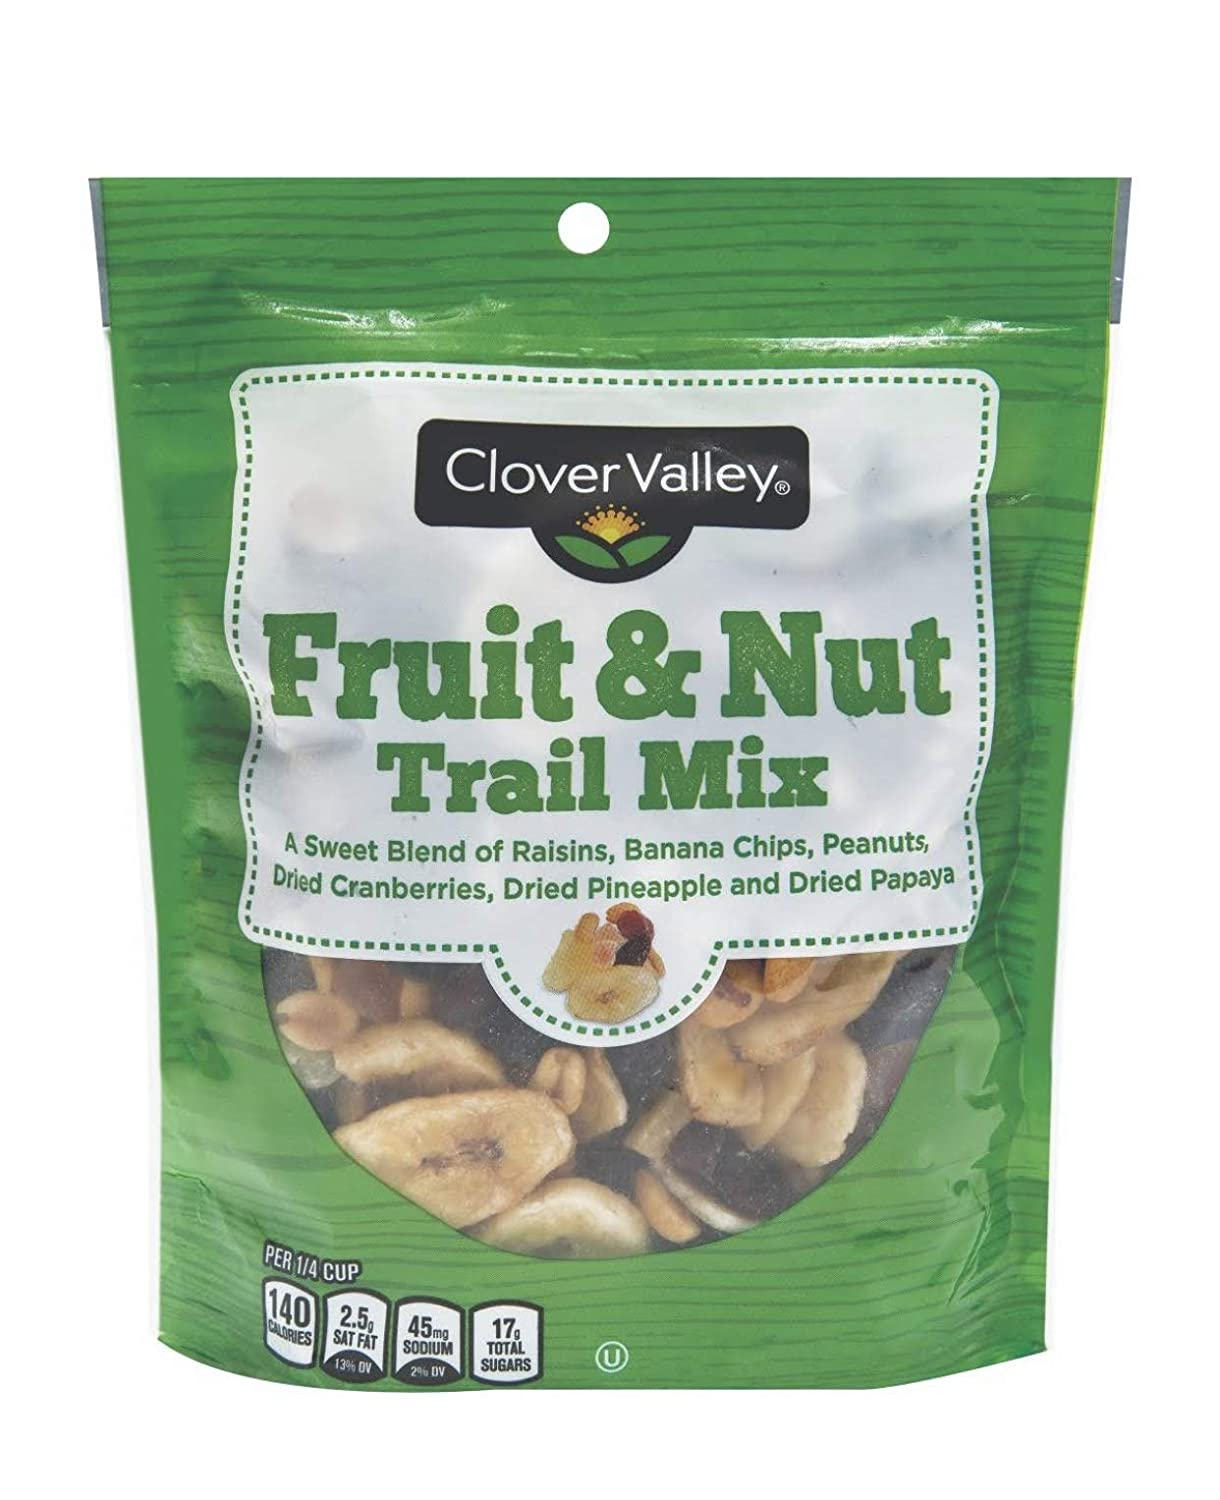 OFFicial site Lowest price challenge Clover Valley Fruit Nut Trail Mix in oz. Bag 10 - Re-sealable